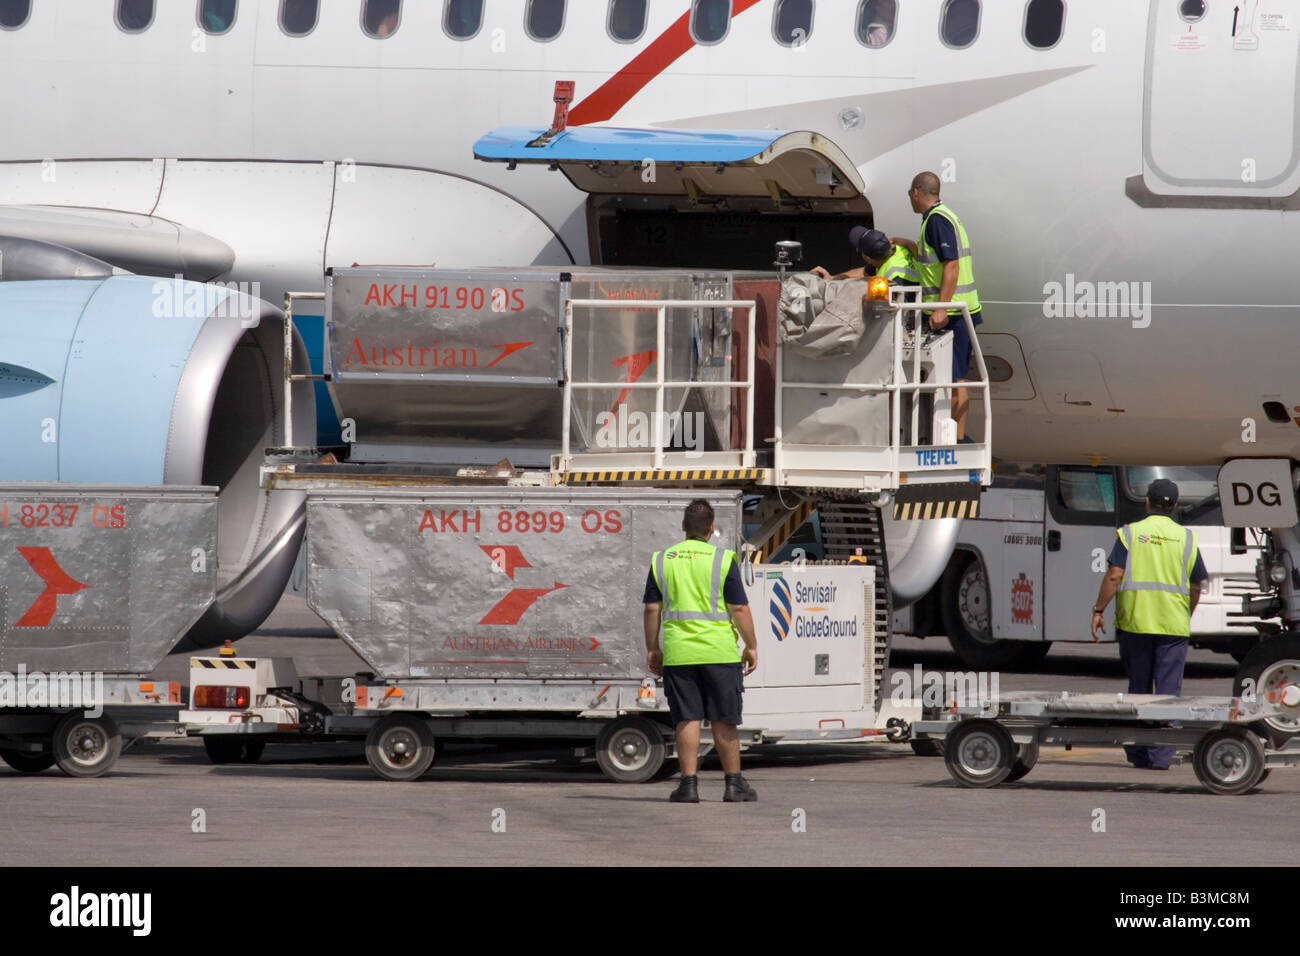 Commercial air freight transport. Loading cargo on board an Austrian Airlines Airbus A319 passenger jet plane - Stock Image